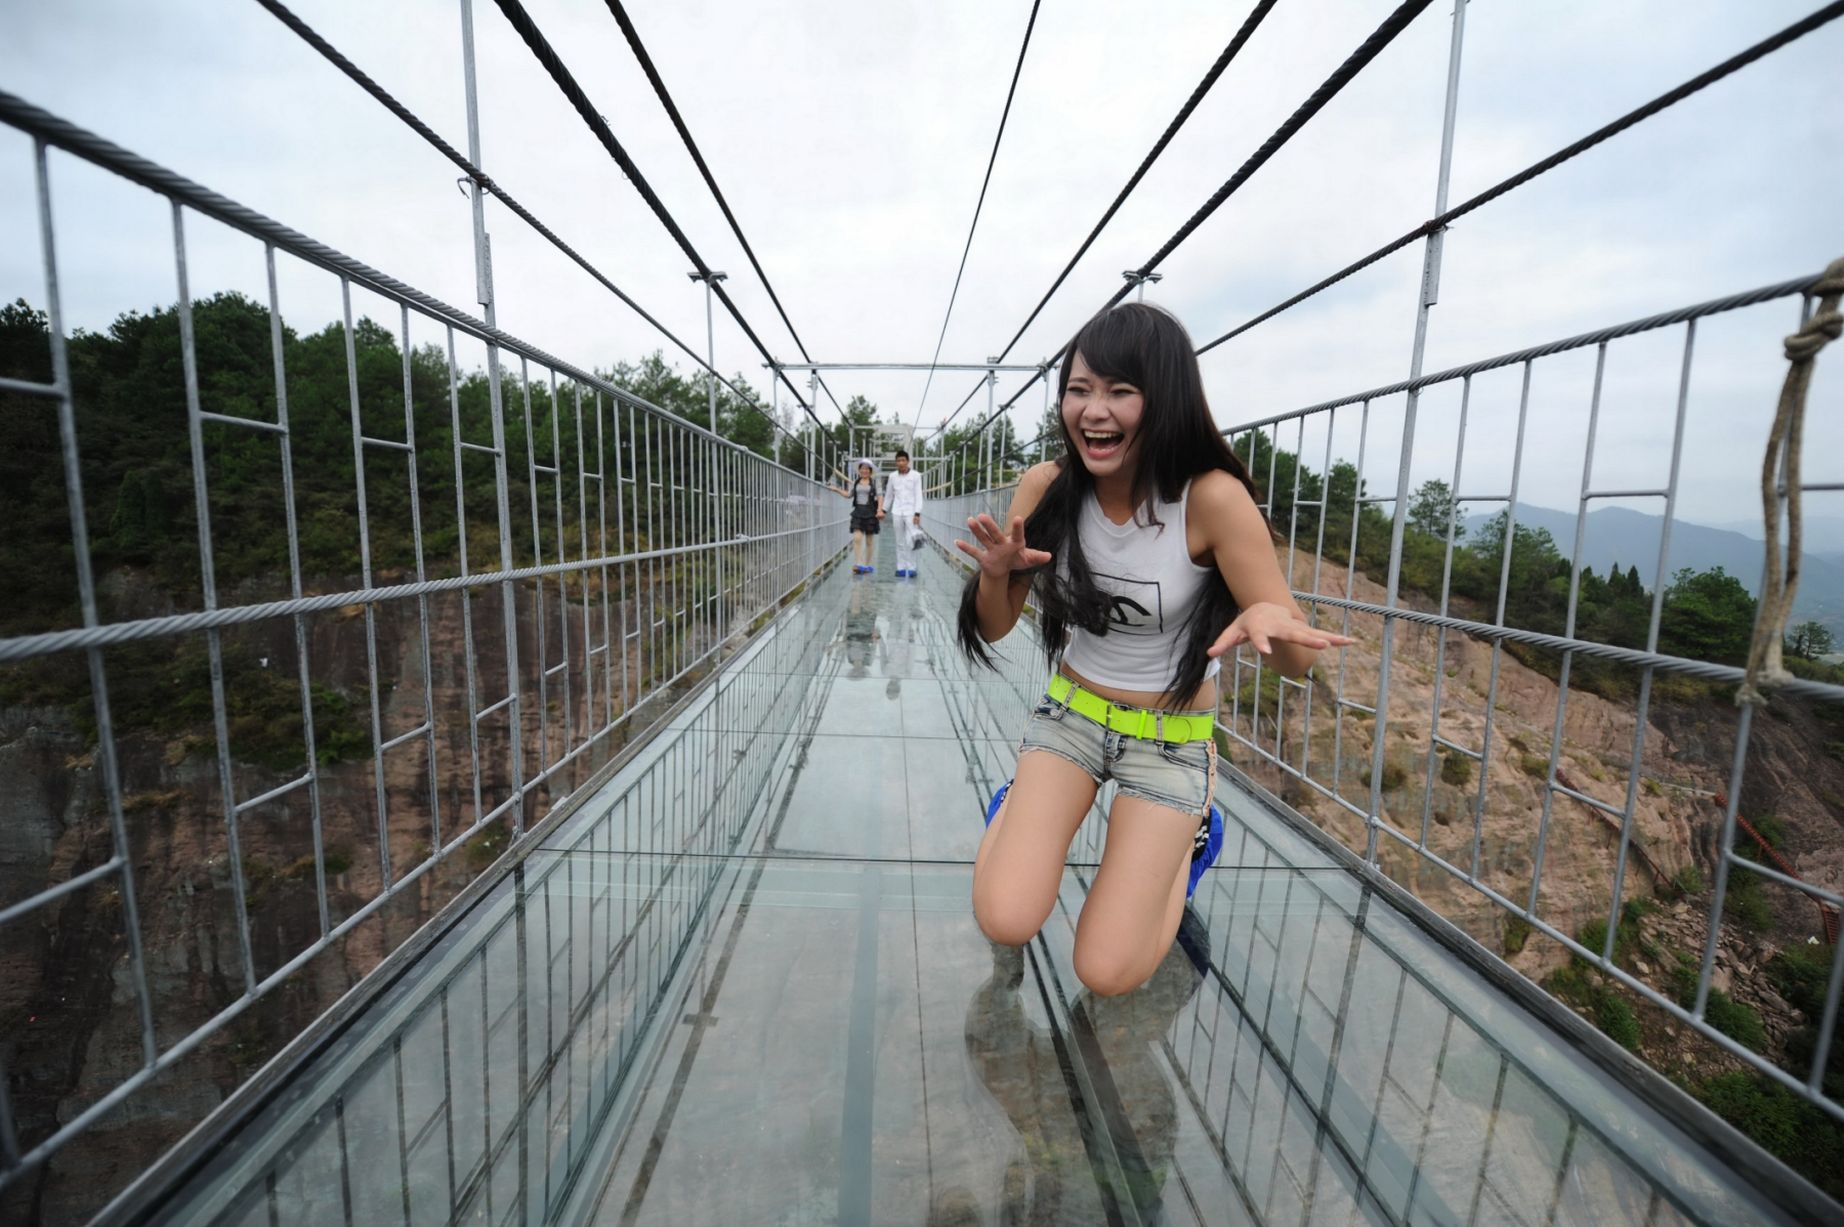 13 Pics Of A Glass Bridge That Strikes Fear In Tourists' Hearts 1